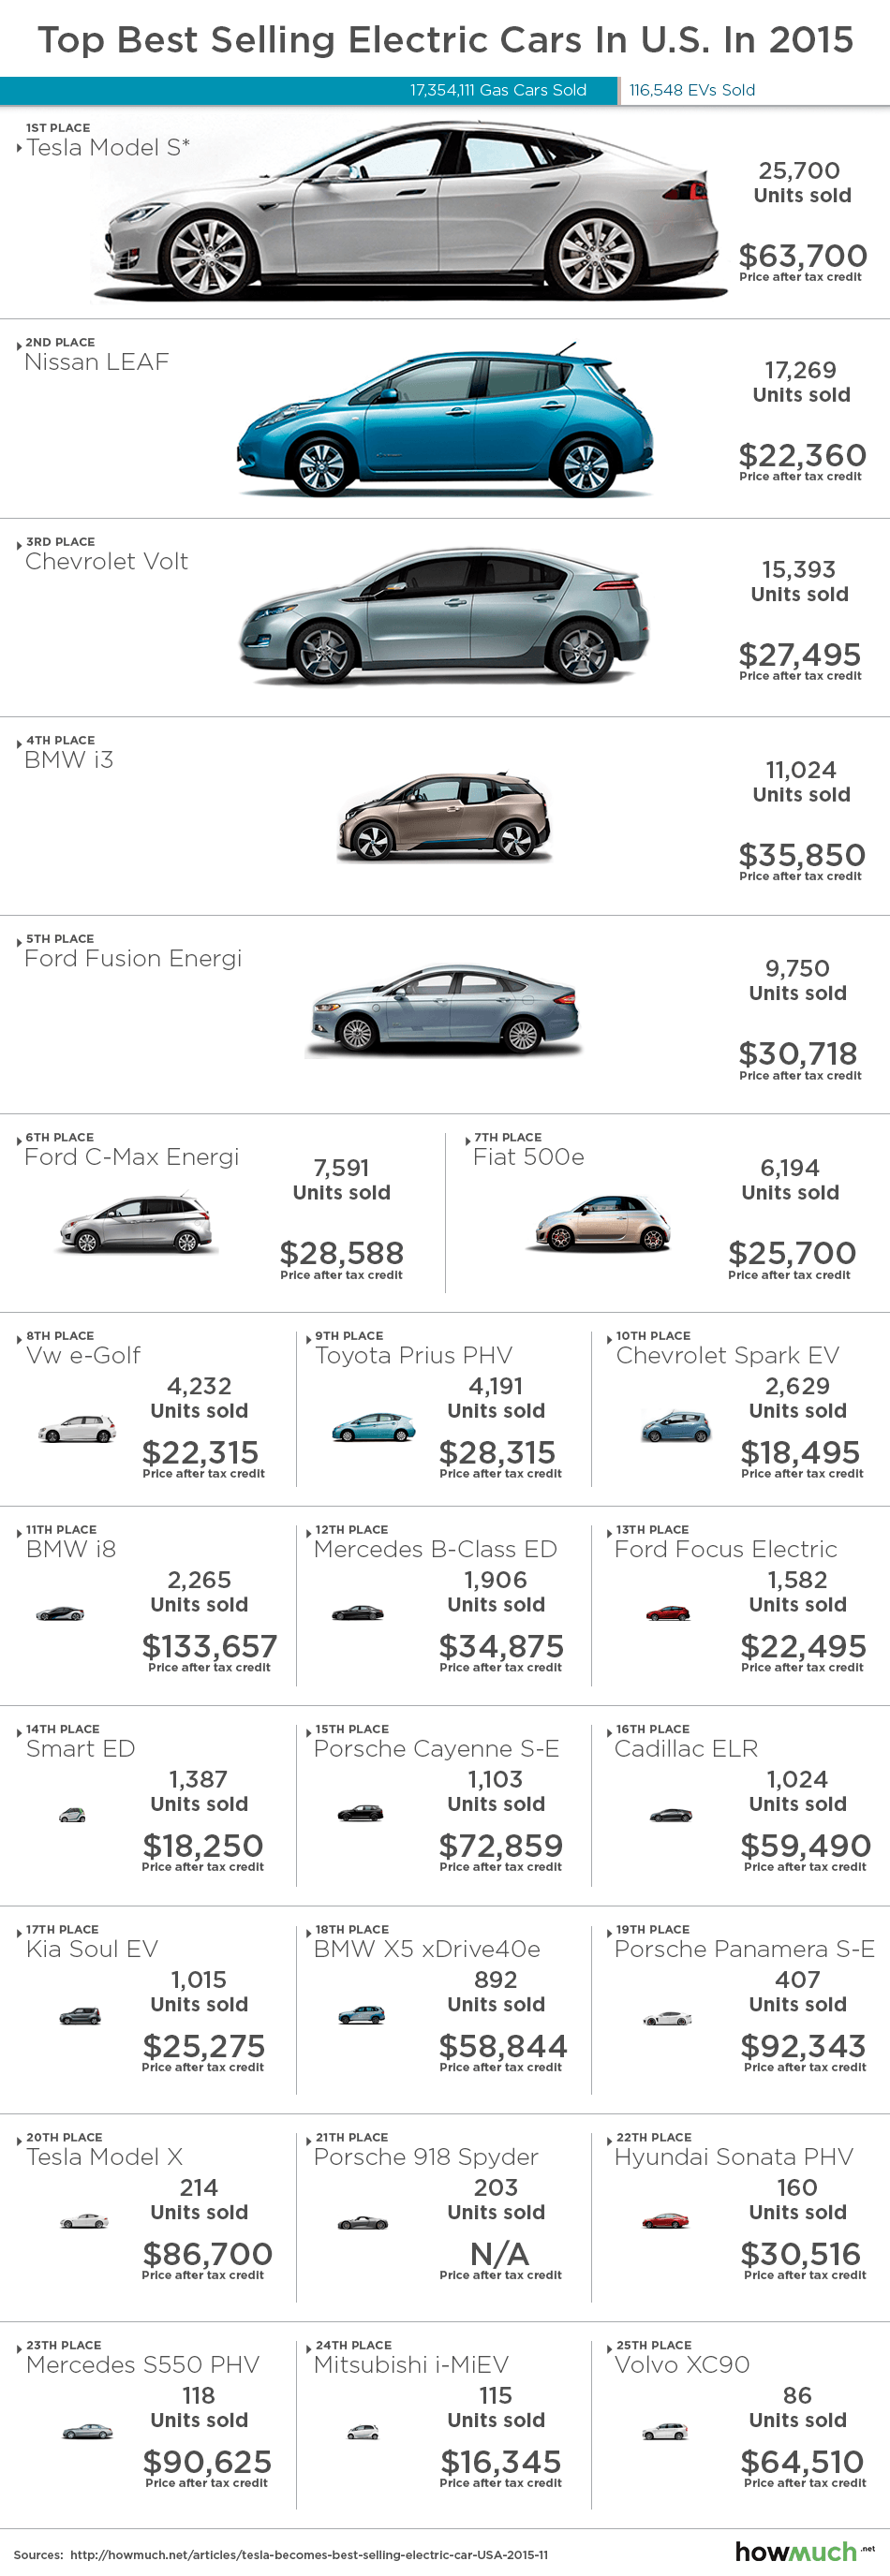 Best Selling Car Model In Each Us State 2013 960x1570: Top 25 Best Selling Electric Cars In U.S. In 2015